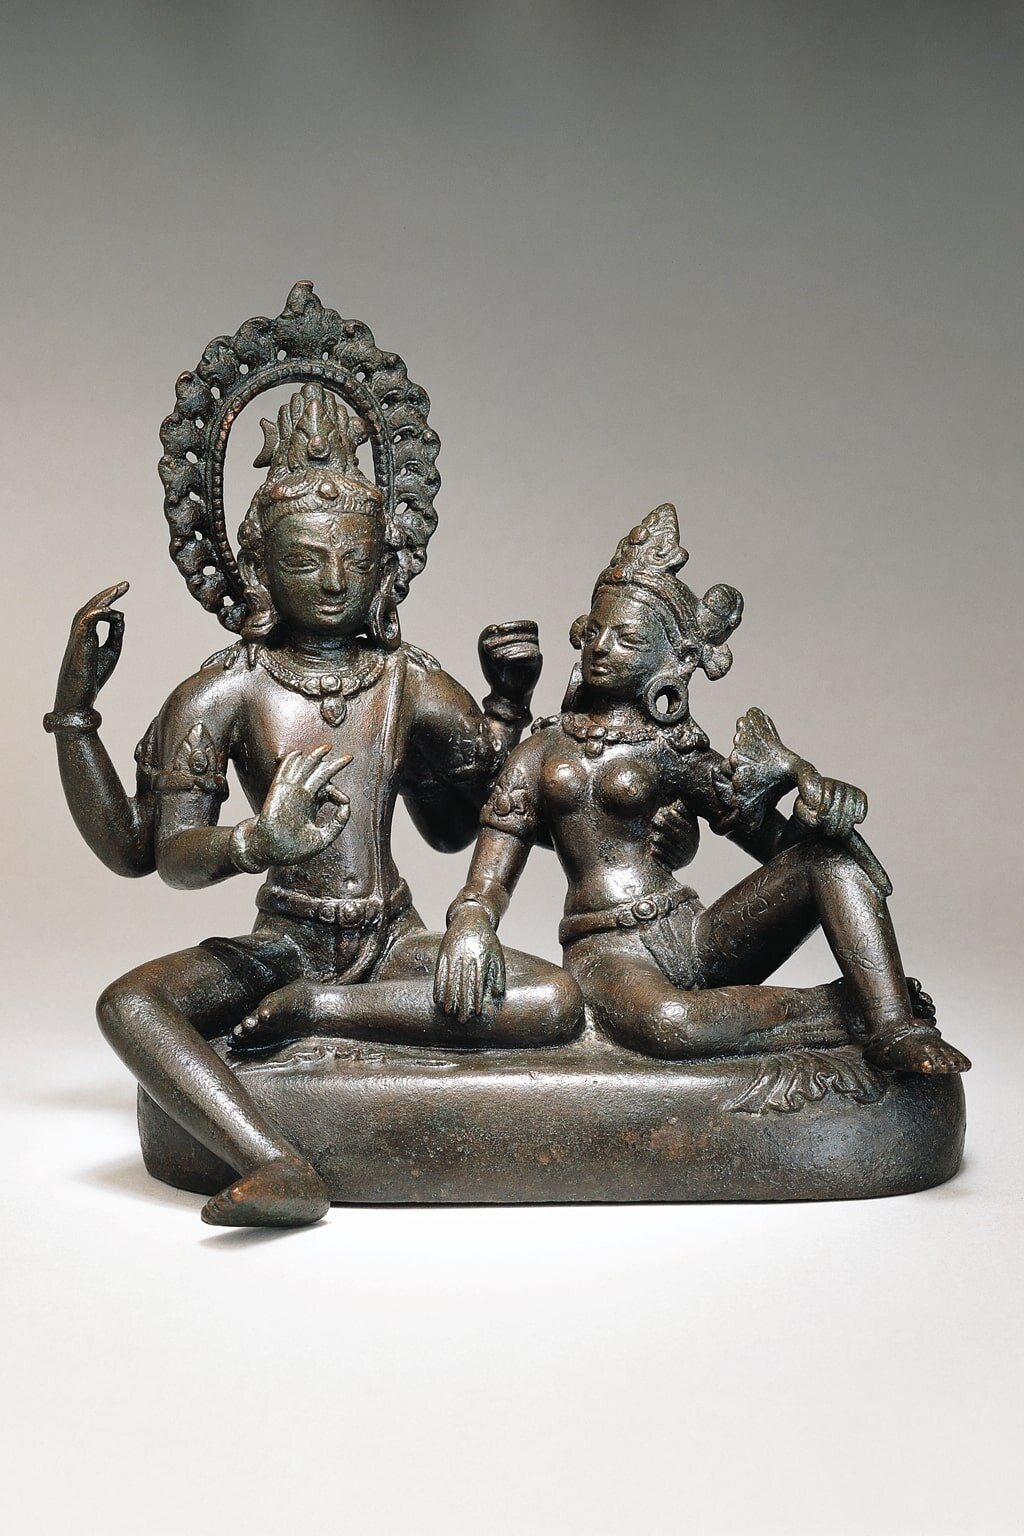 Shiva and Parvati (Uma-Maheshvara-murti) . Transitional period, late 10th–early 11th century. Nepal, Kathmandu Valley. Copper alloy. H. 6⅛ x W. 6¼ x D. 4¾ in (15.5 x 15.9 x 12 cm). Asia Society, New York: Mr. and Mrs. John D. Rockefeller 3rd Collection, 1979.48. Image courtesy Asia Society.